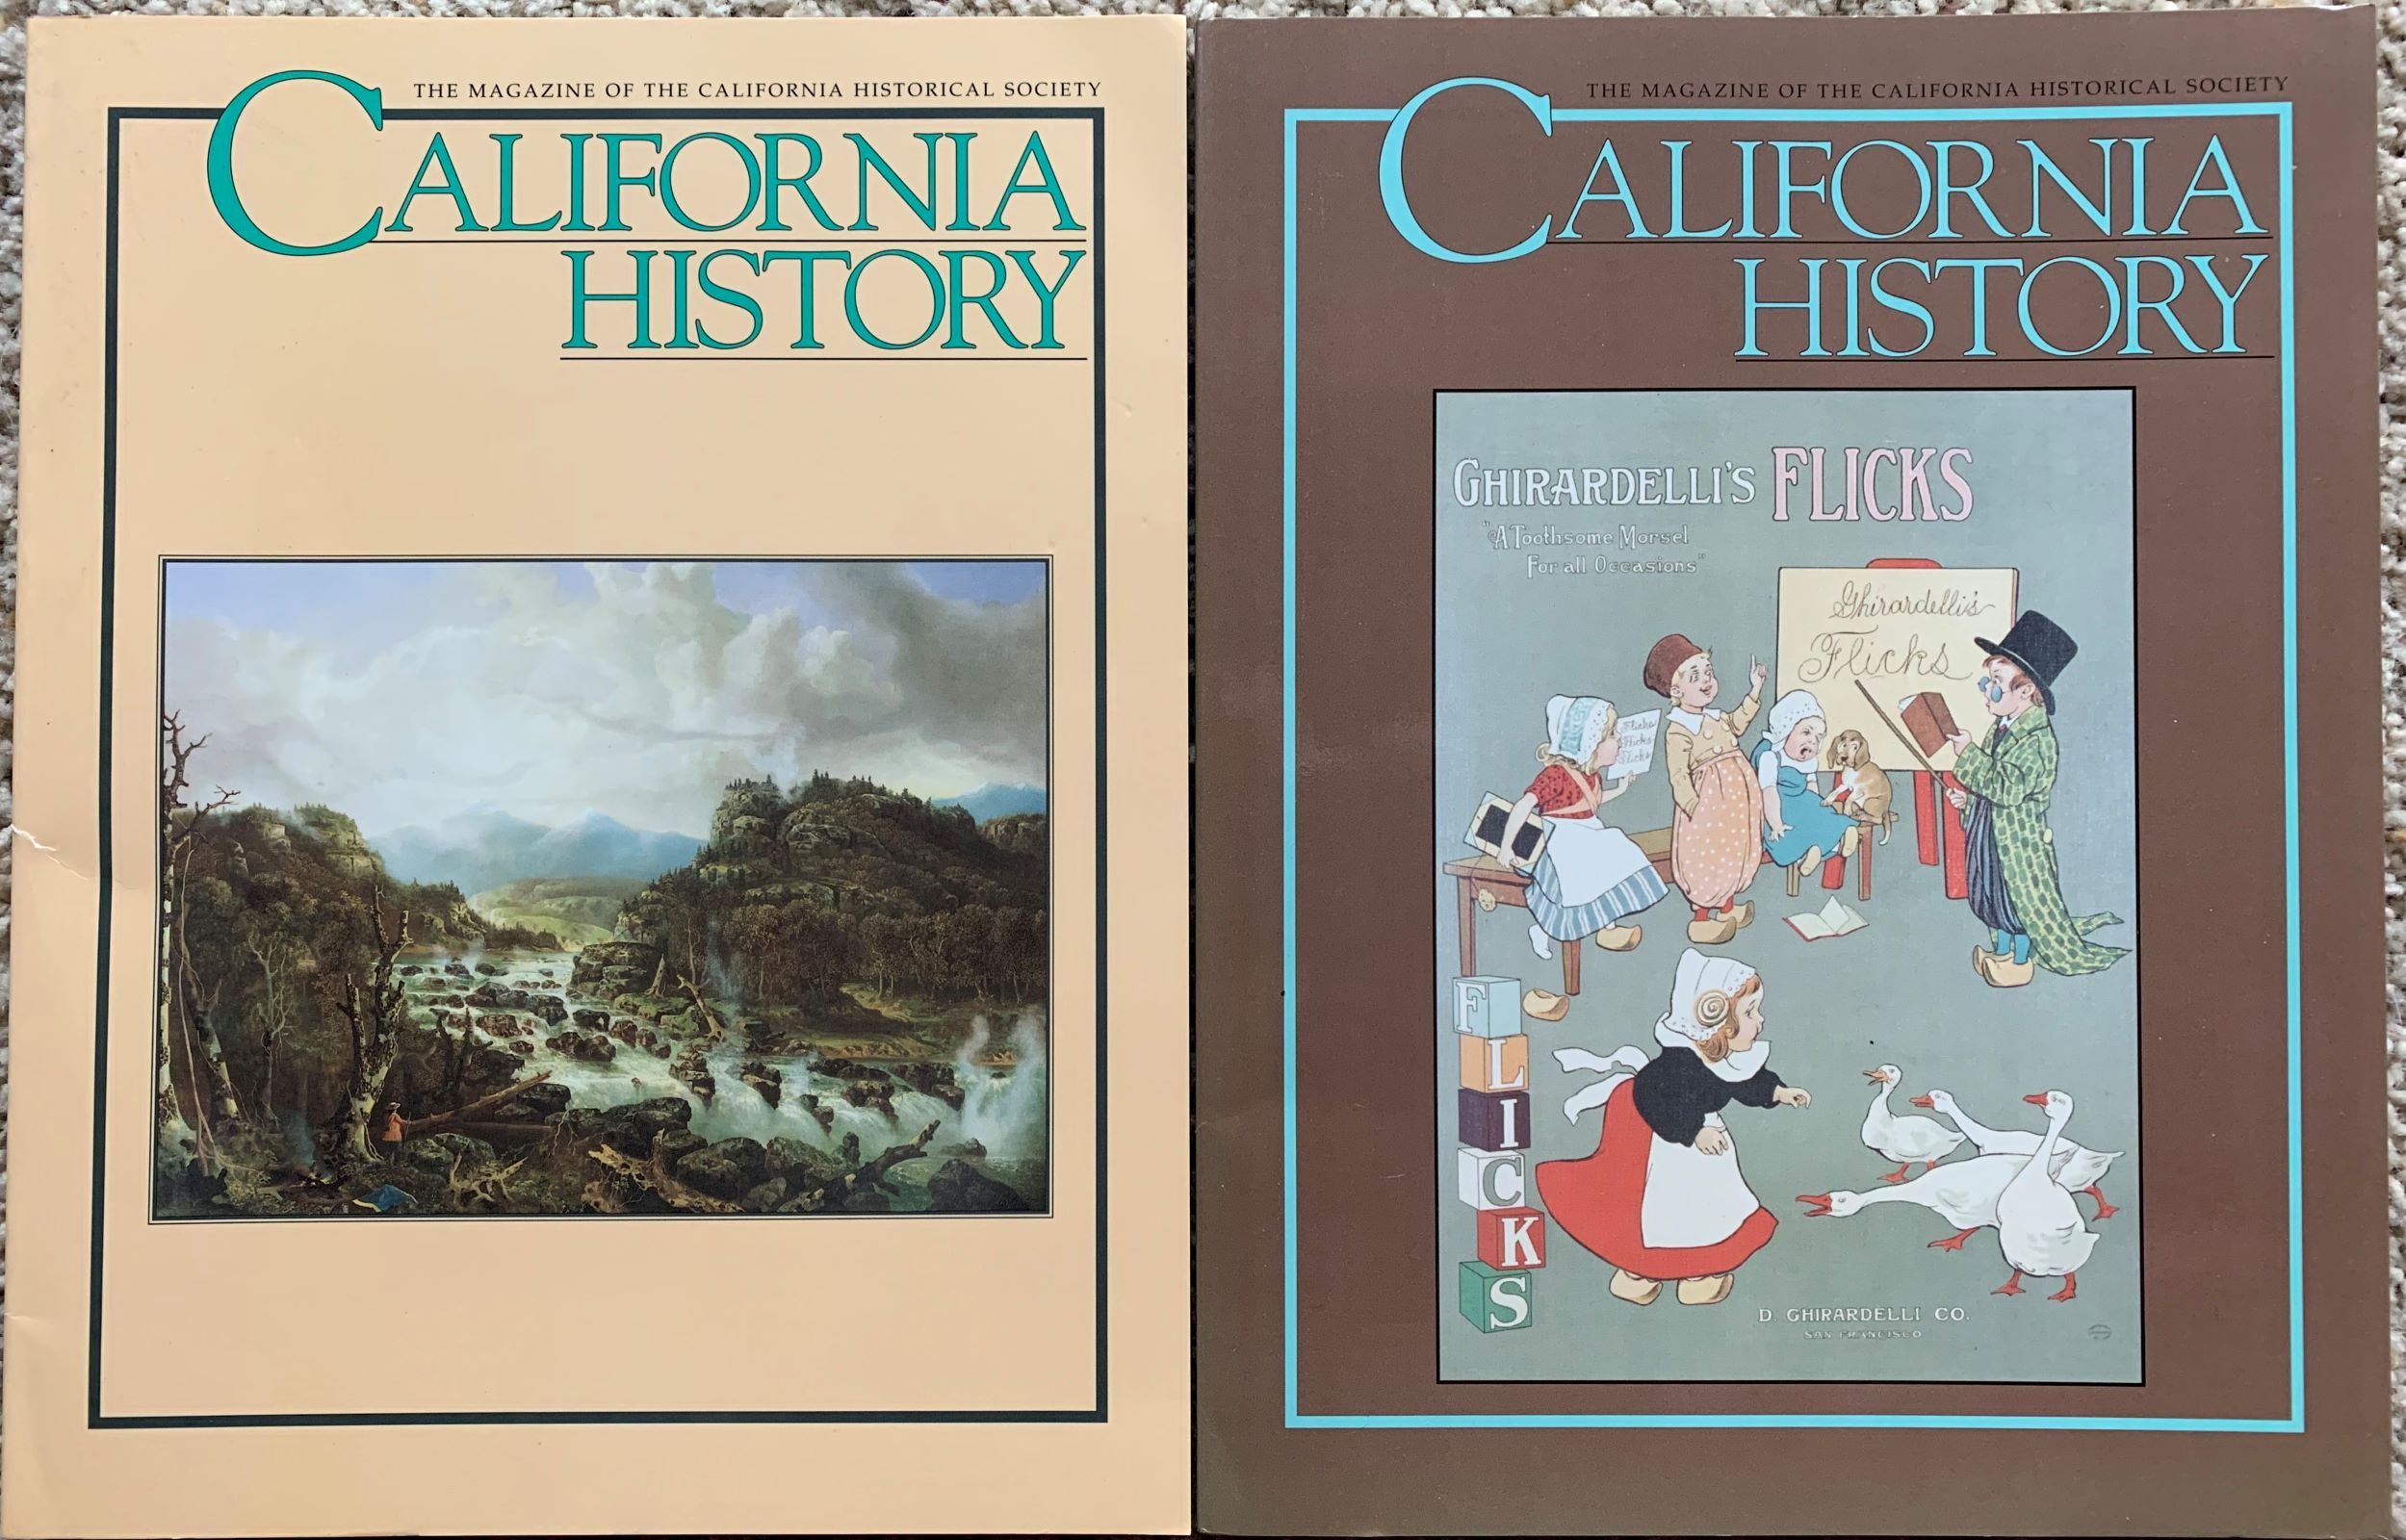 Image for (Two Issues) California History.  The Magazine of the California Historical Society. Volume 81, No's 1&2.